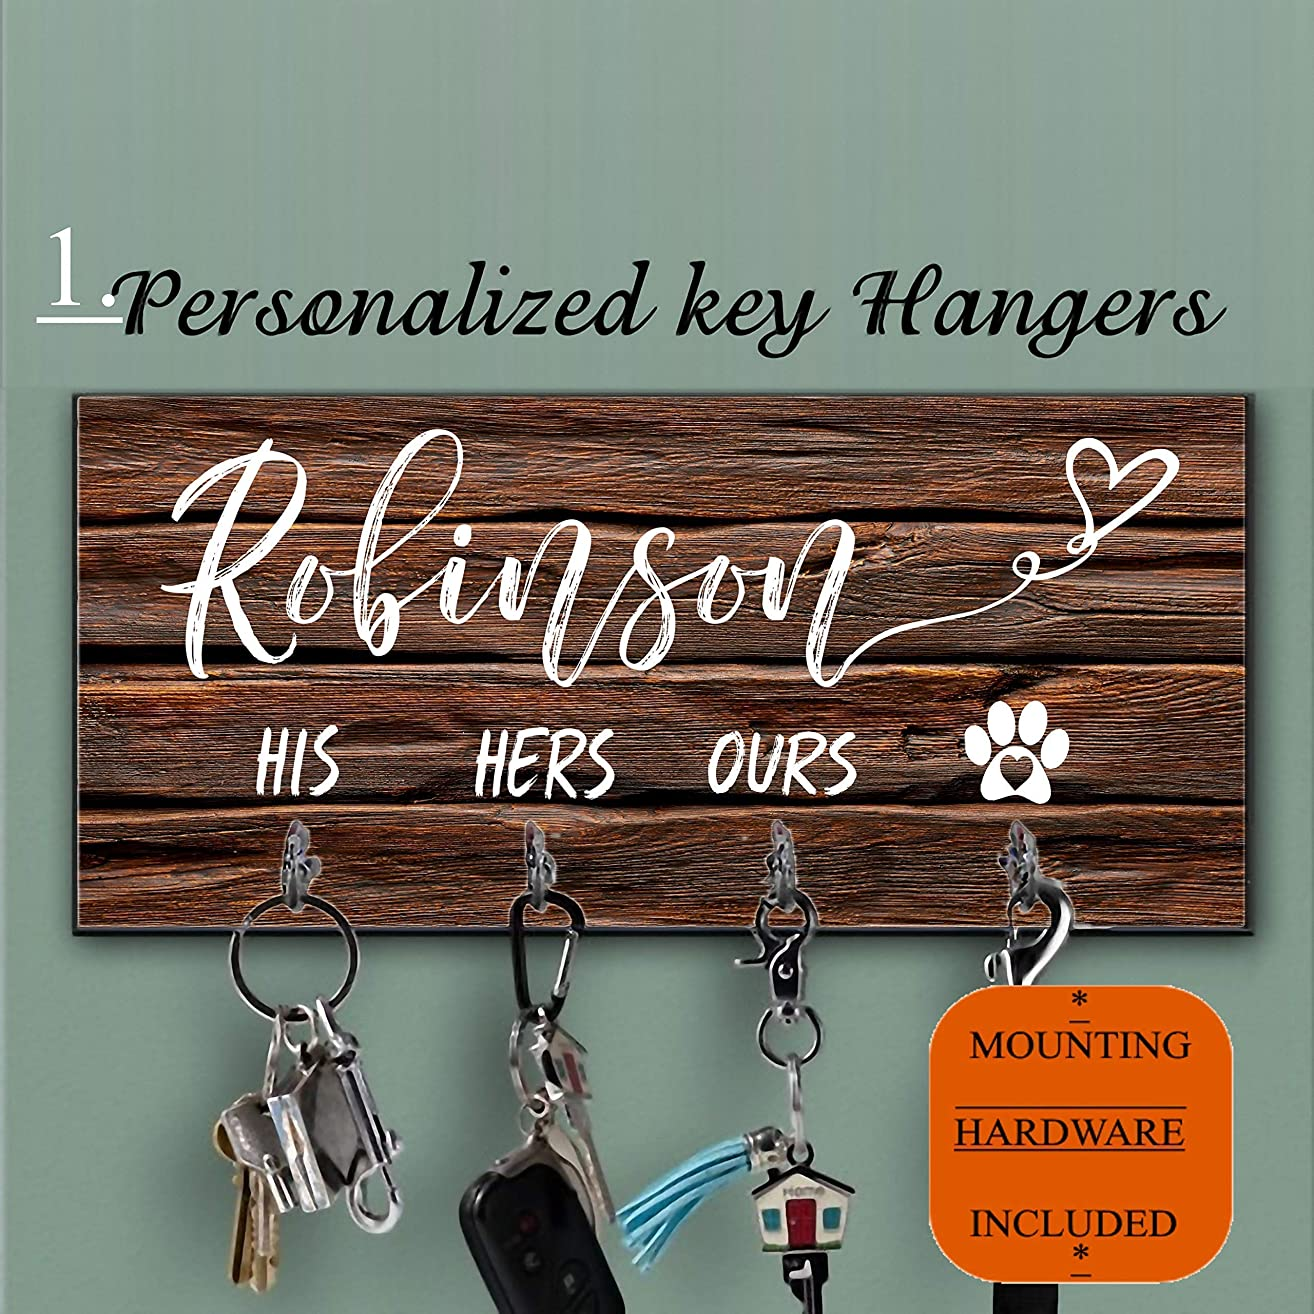 Personalized key holder and Dog Leash hanger for wall, Dog lovers Key Hanger,Personalized Key Ring Holder, Custom Key Holder For Wall, Personalized Key Hanger, Housewarming Gift, Leash Holder